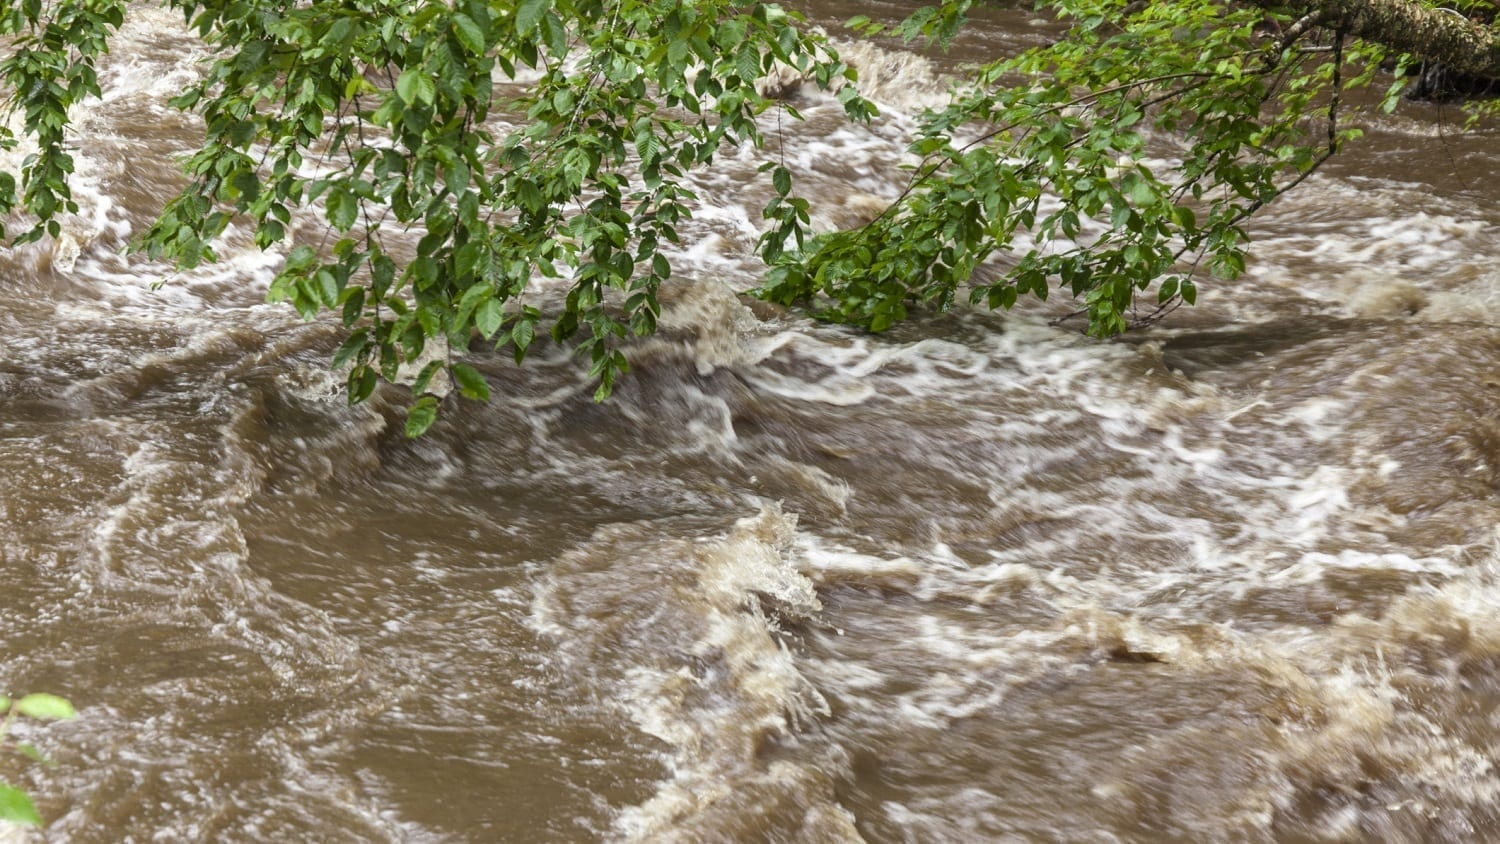 Flood waters swirling around a tree's branches: ID 126789221 © Mothy20 | Dreamstime.com